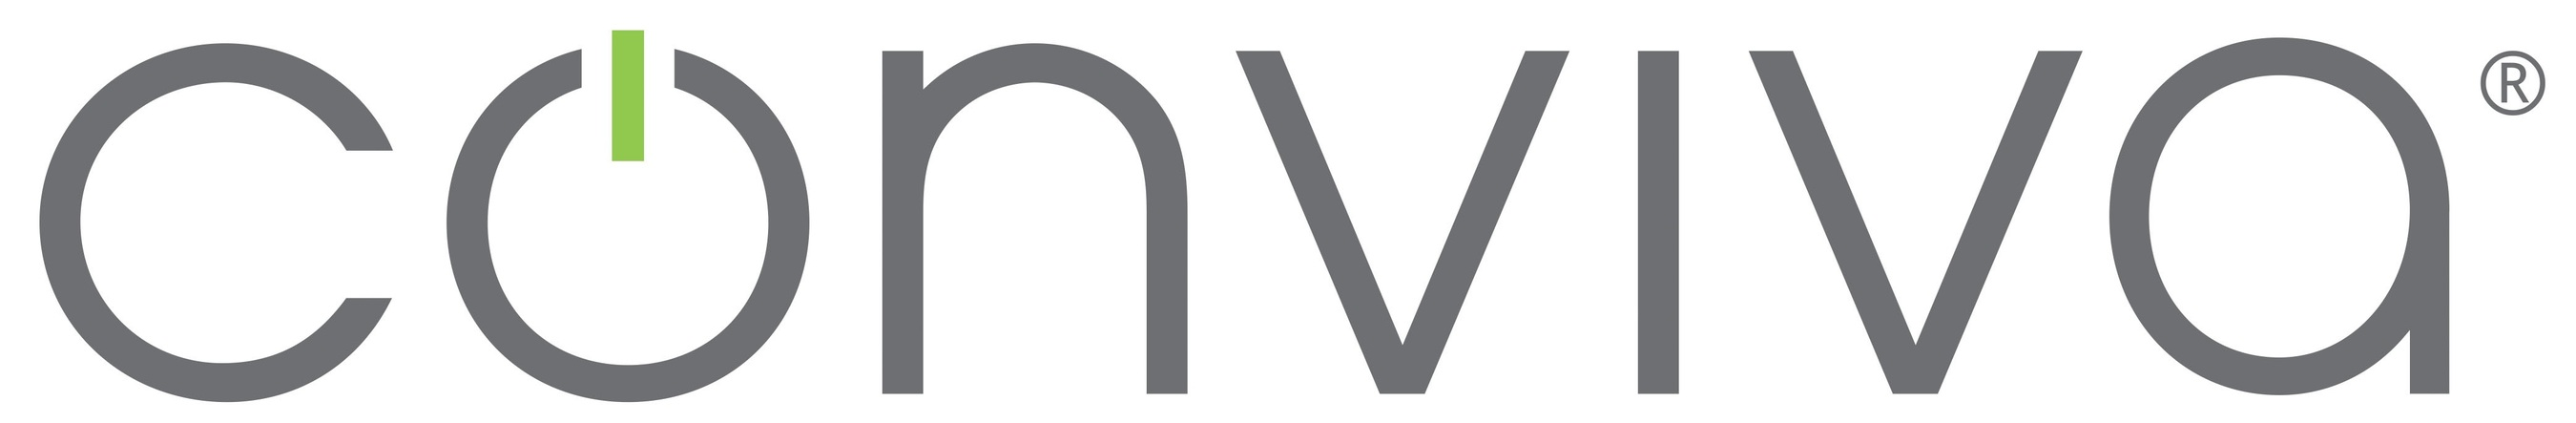 Conviva Expands Experience Management to Include Advertising with New Ad Insights Product